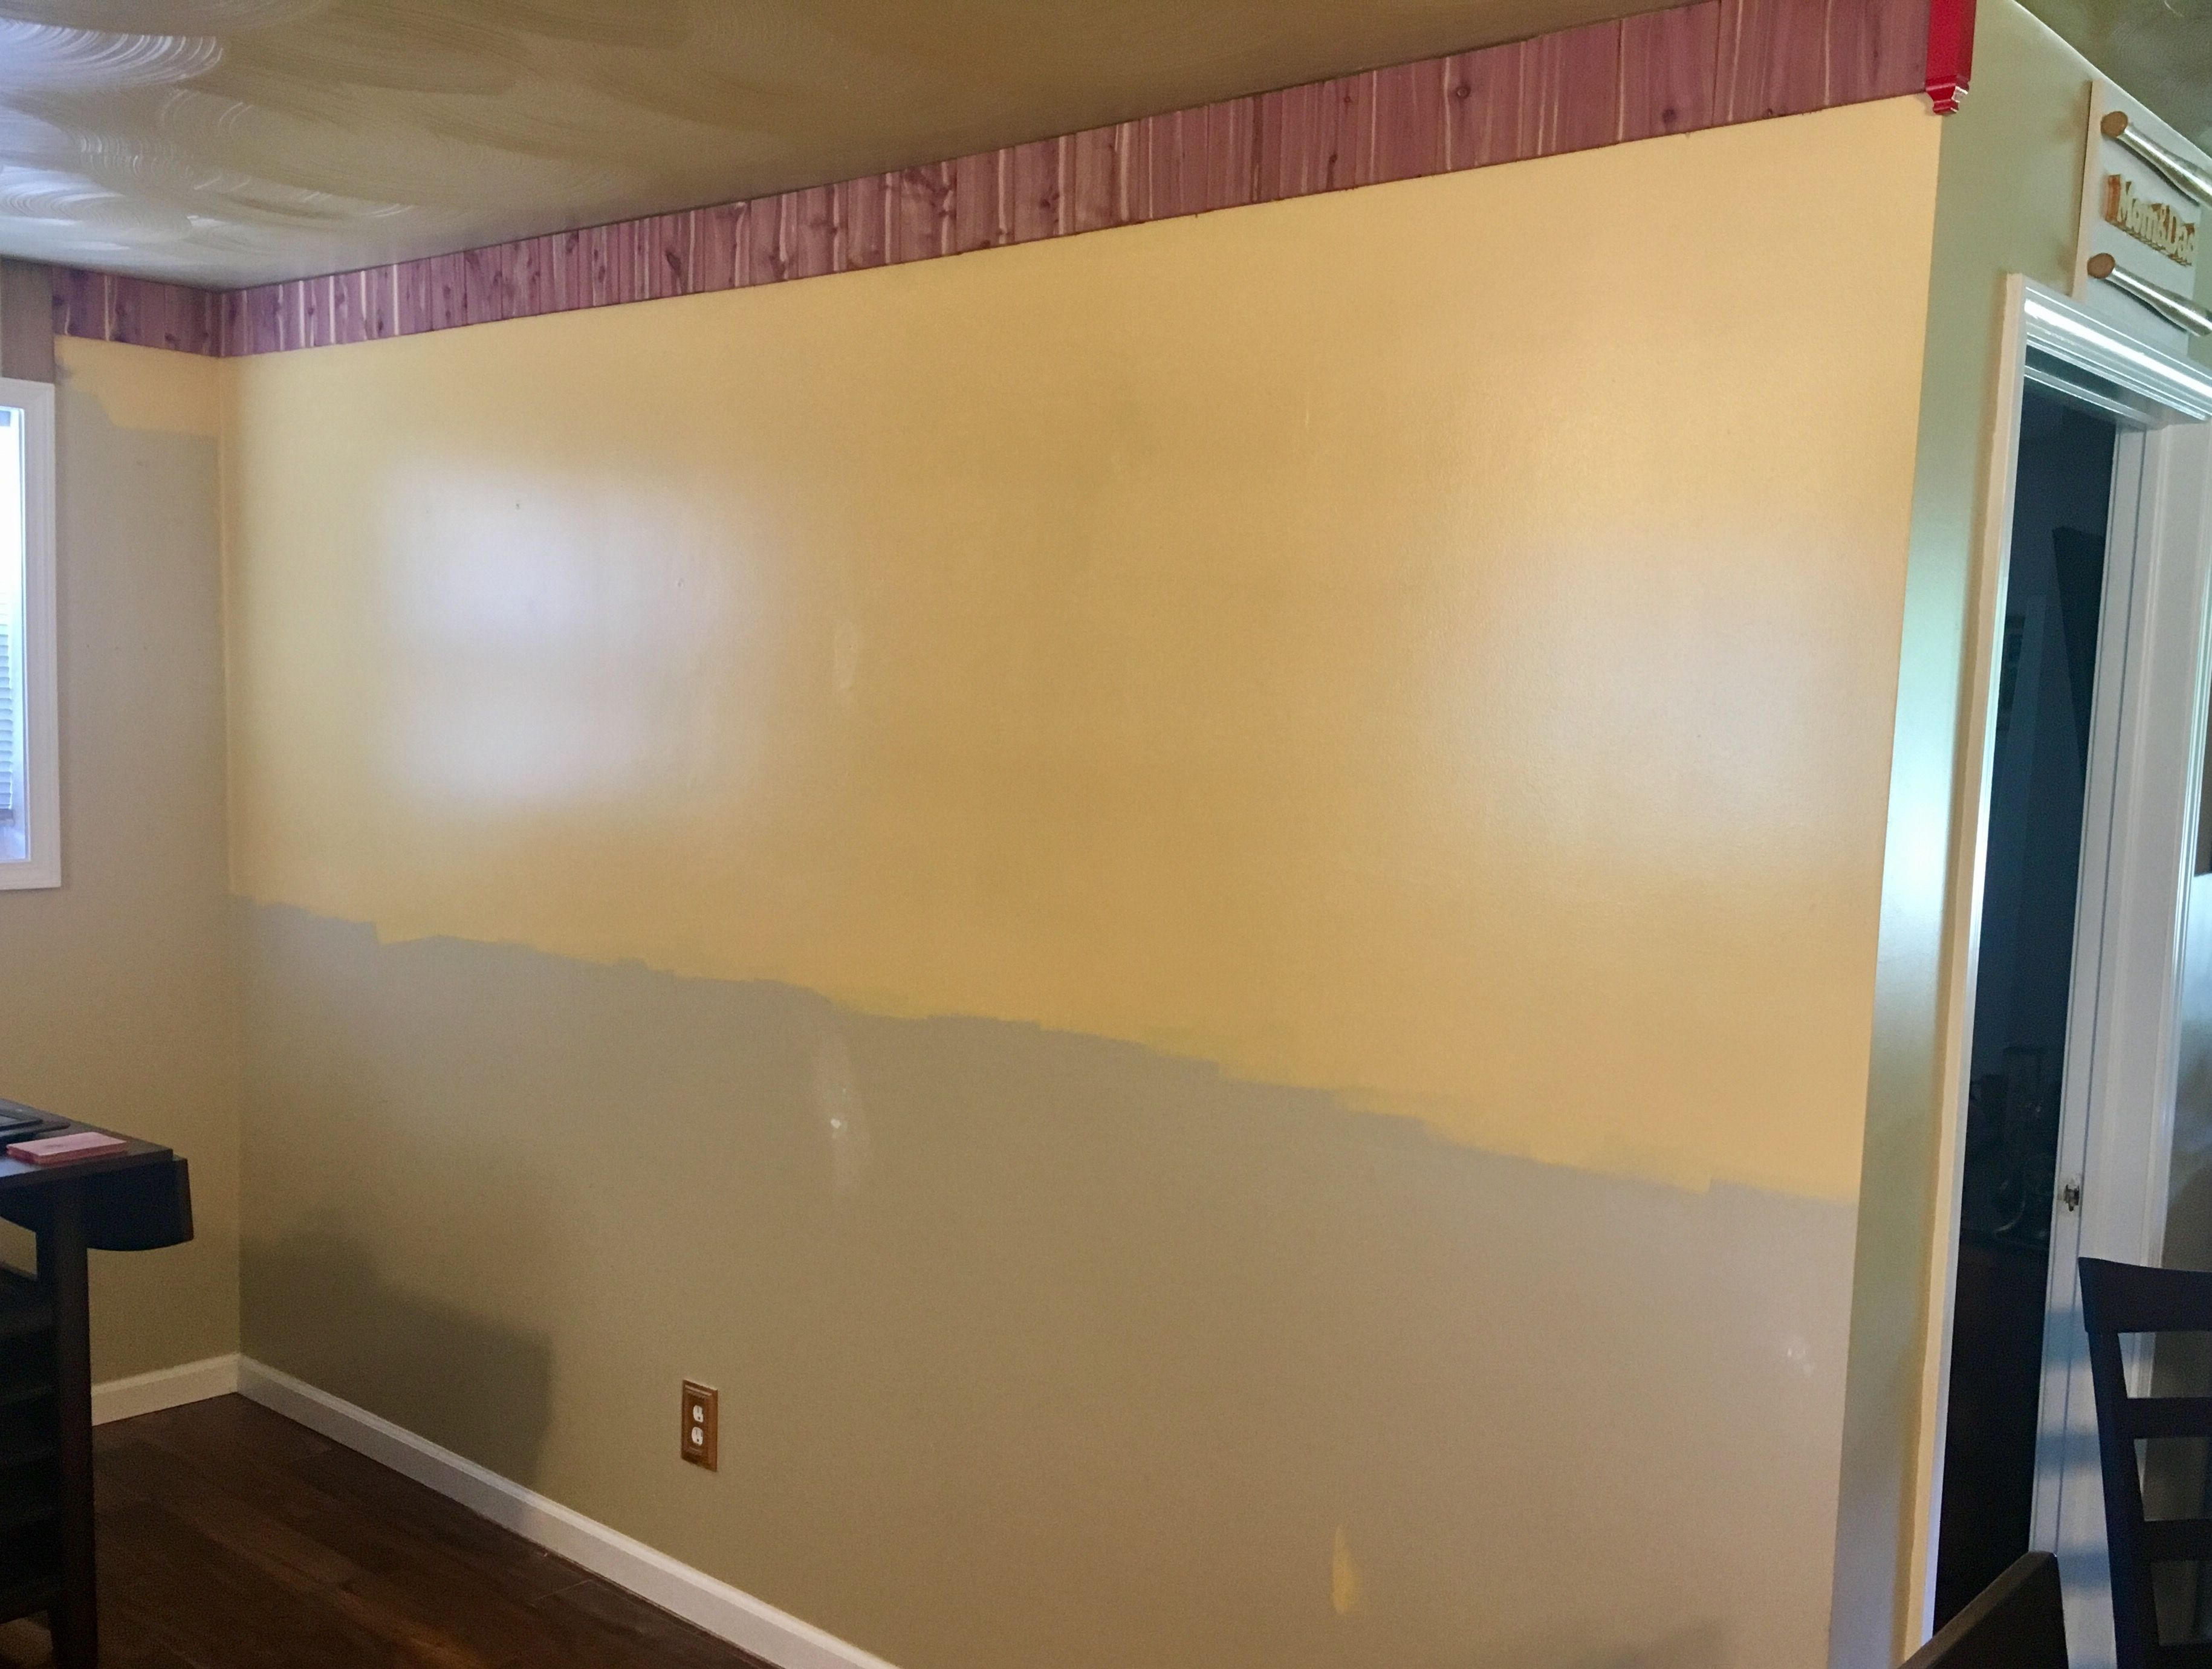 The Top Half Wall Was Painted Until Bottom Line For Chair Rail